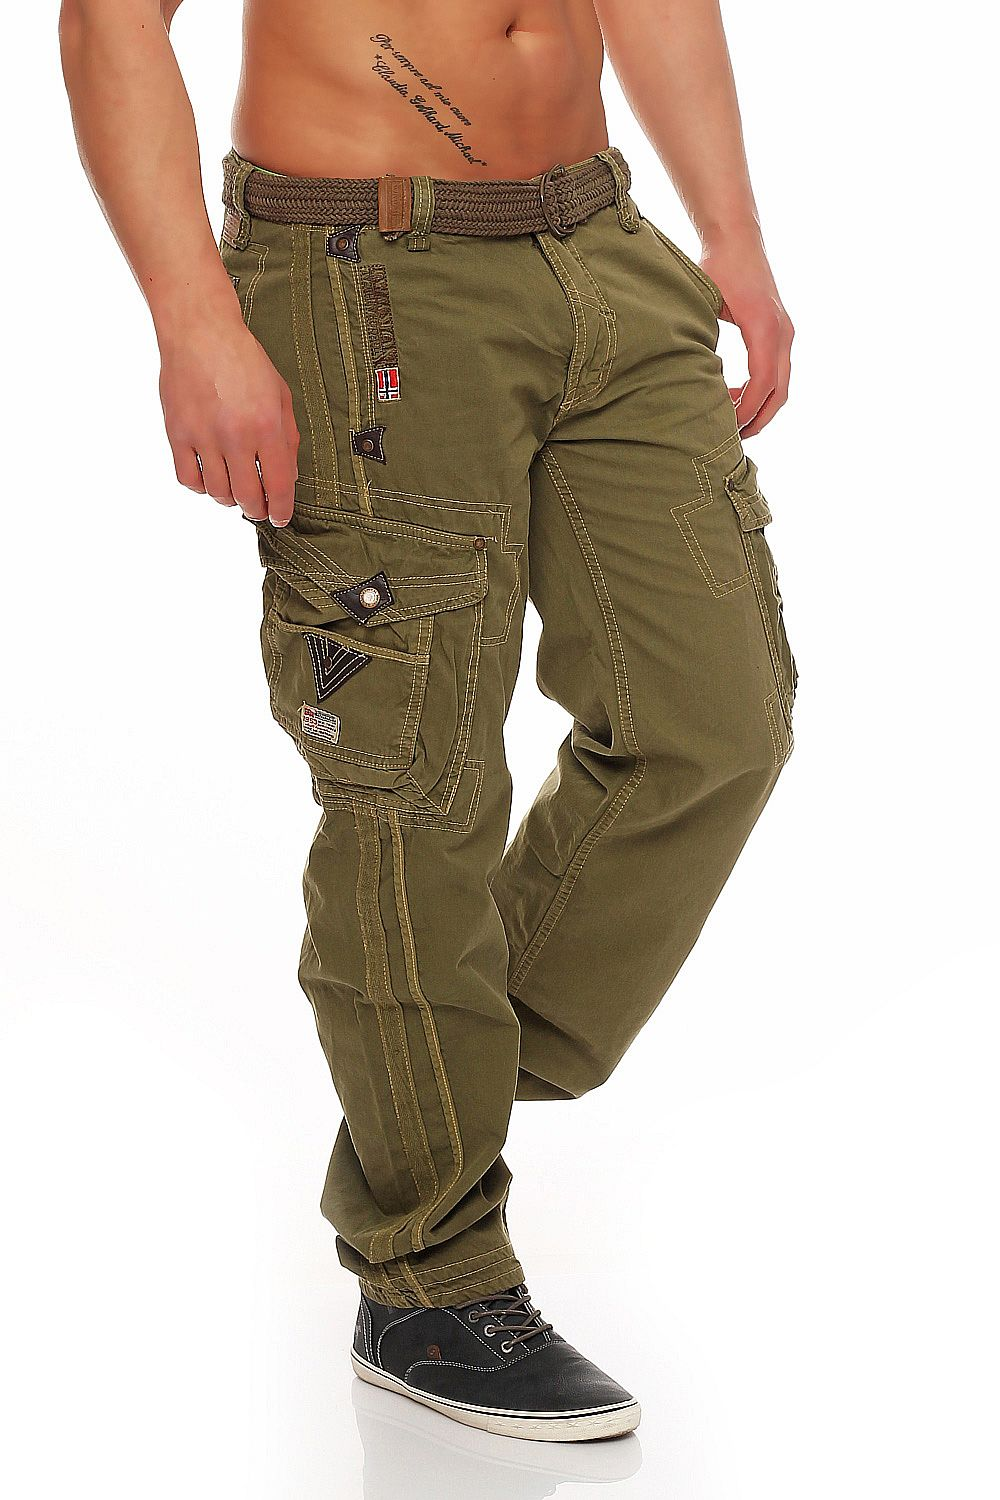 Geographical-Norway-Herren-Hose-Perle-Cargo-Pant-Cargohose-S-M-L-XL-XXL